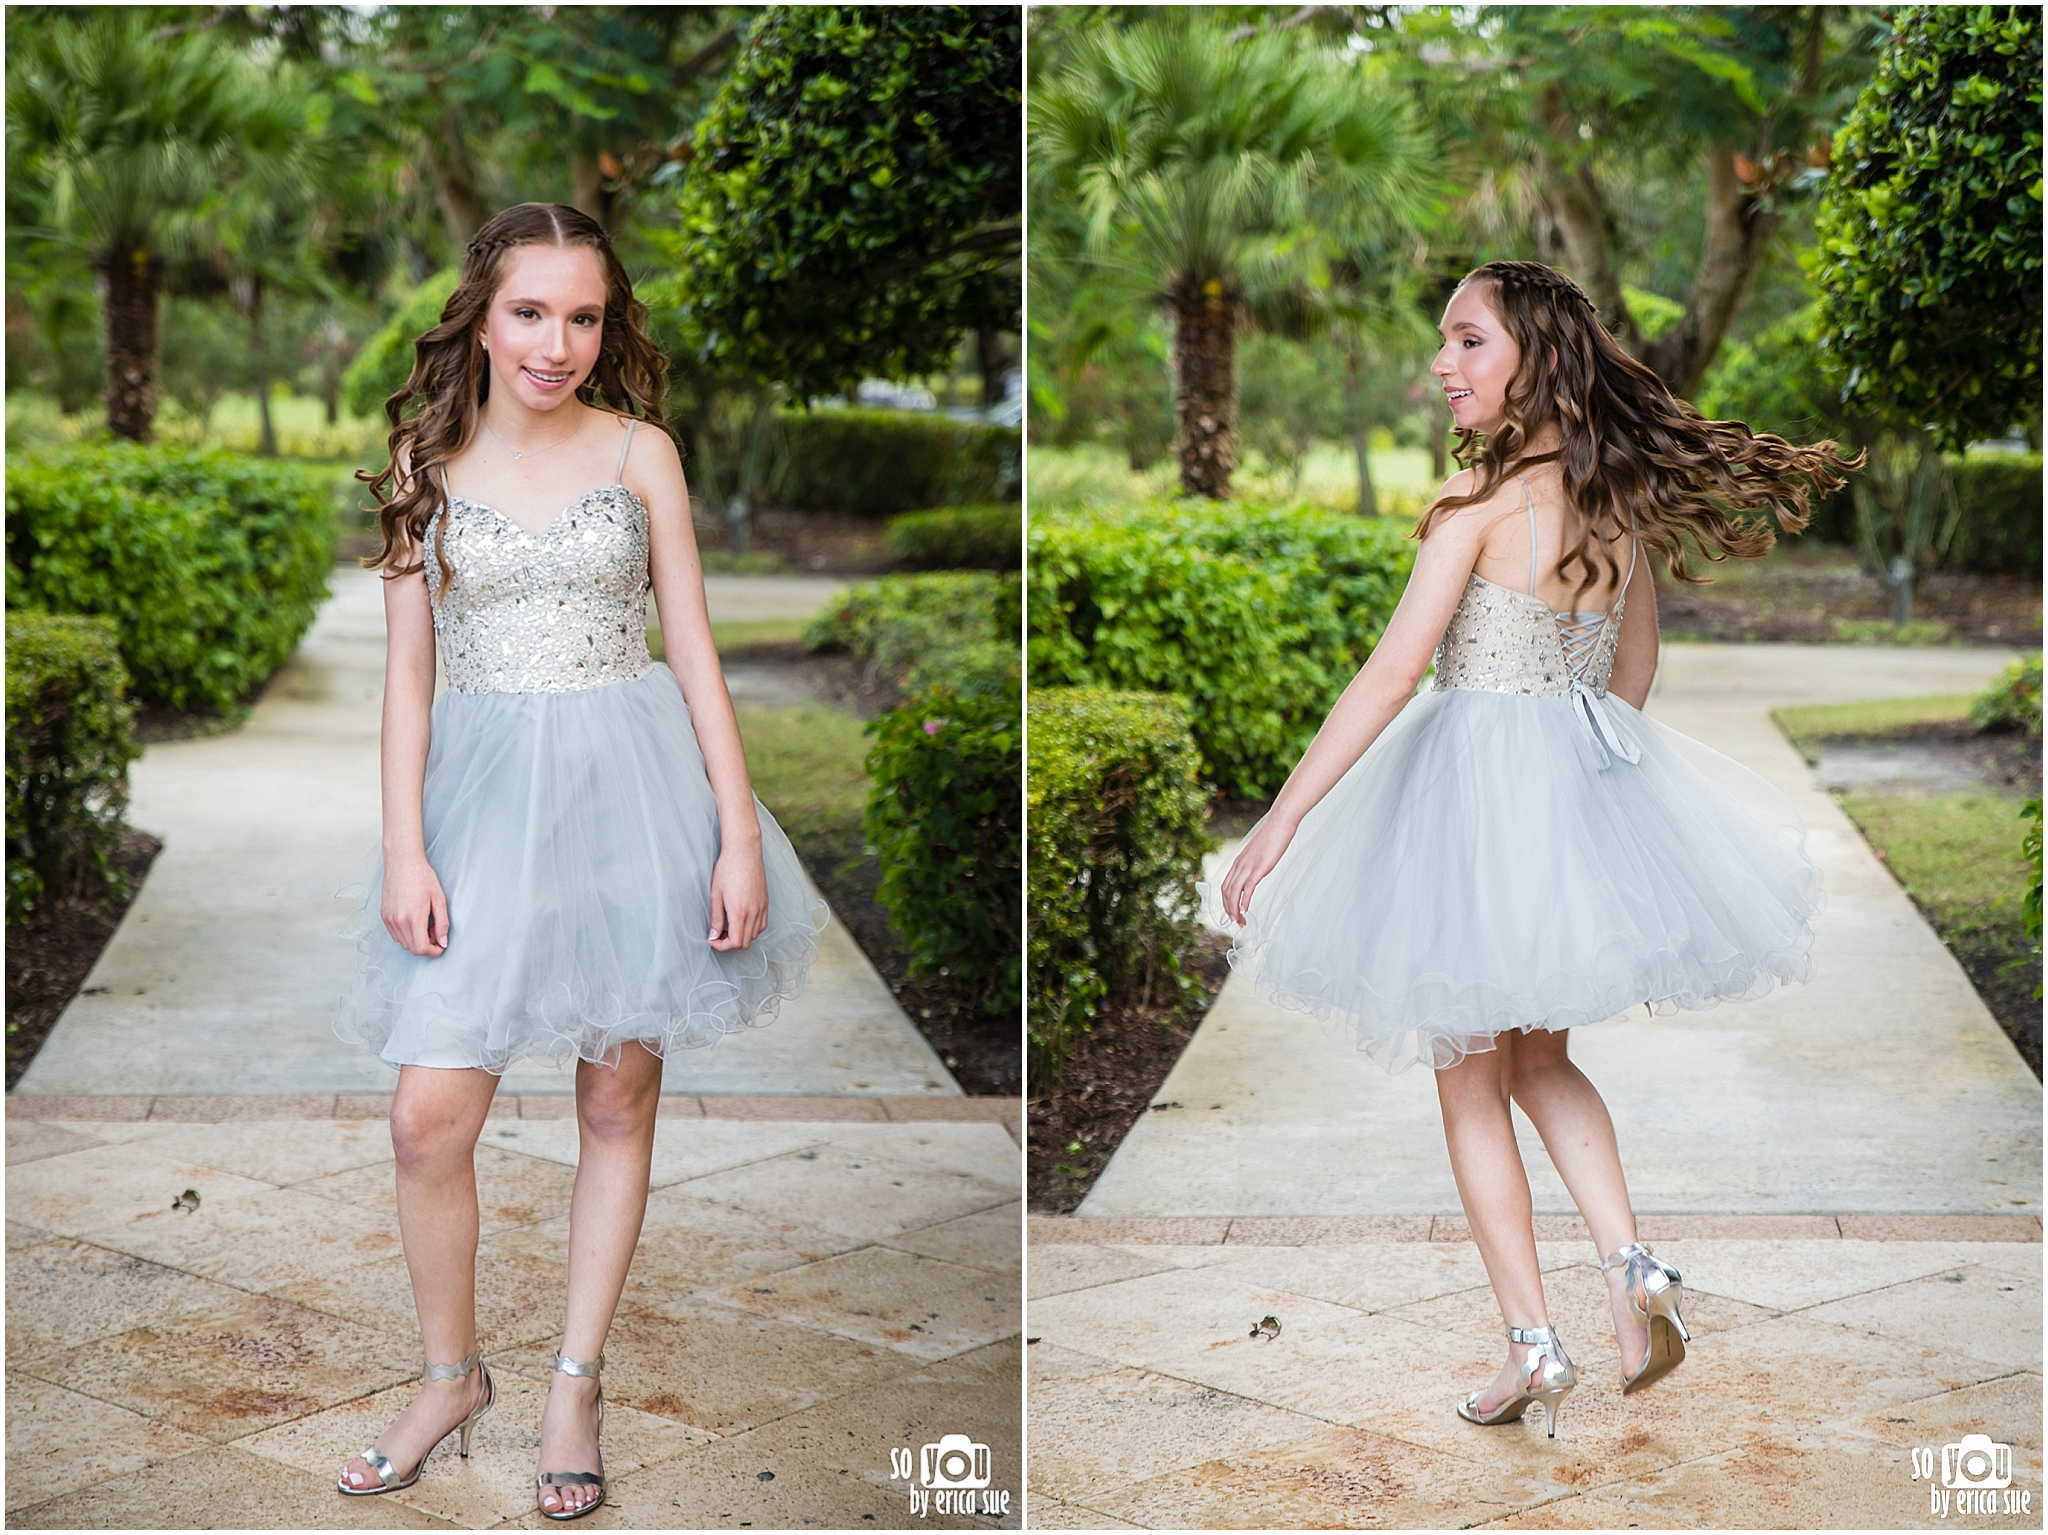 parkland-fl-mitzvah-photography-so-you-by-erica-sue-0645 (2).jpg